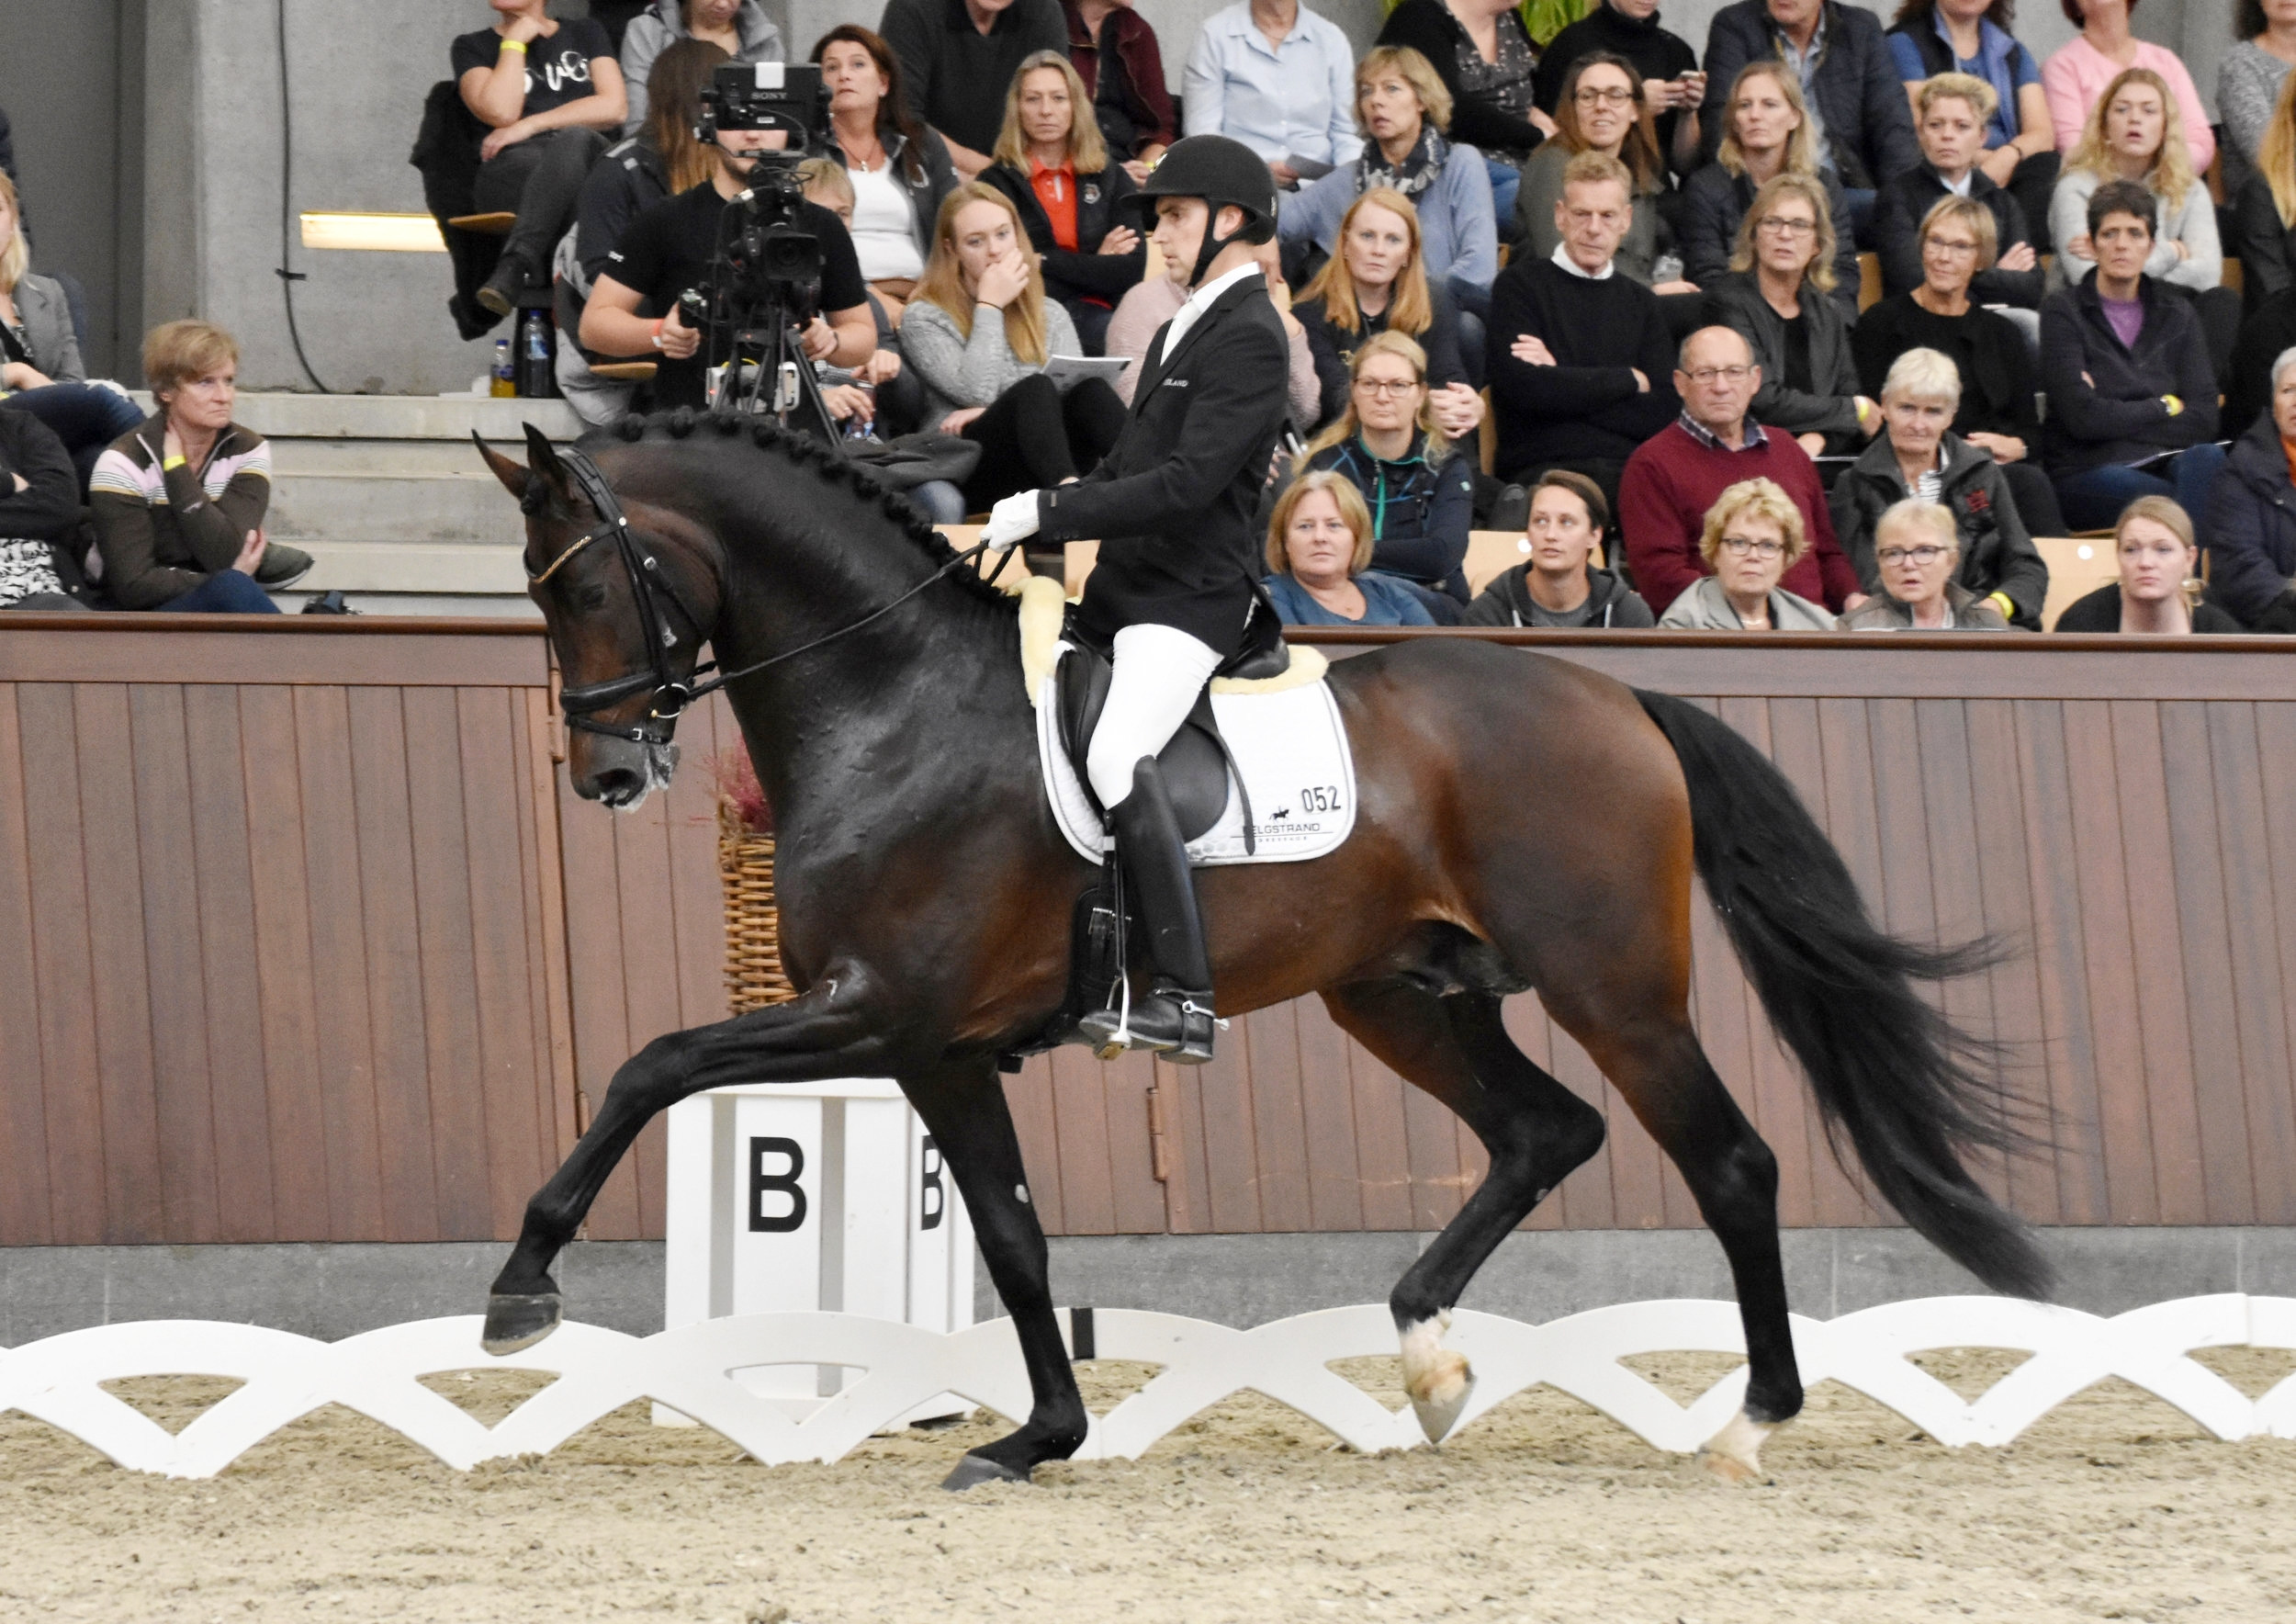 Revolution and Andreas Helgstrand - photo credit: Helgstrand Dressage/Mia Bach